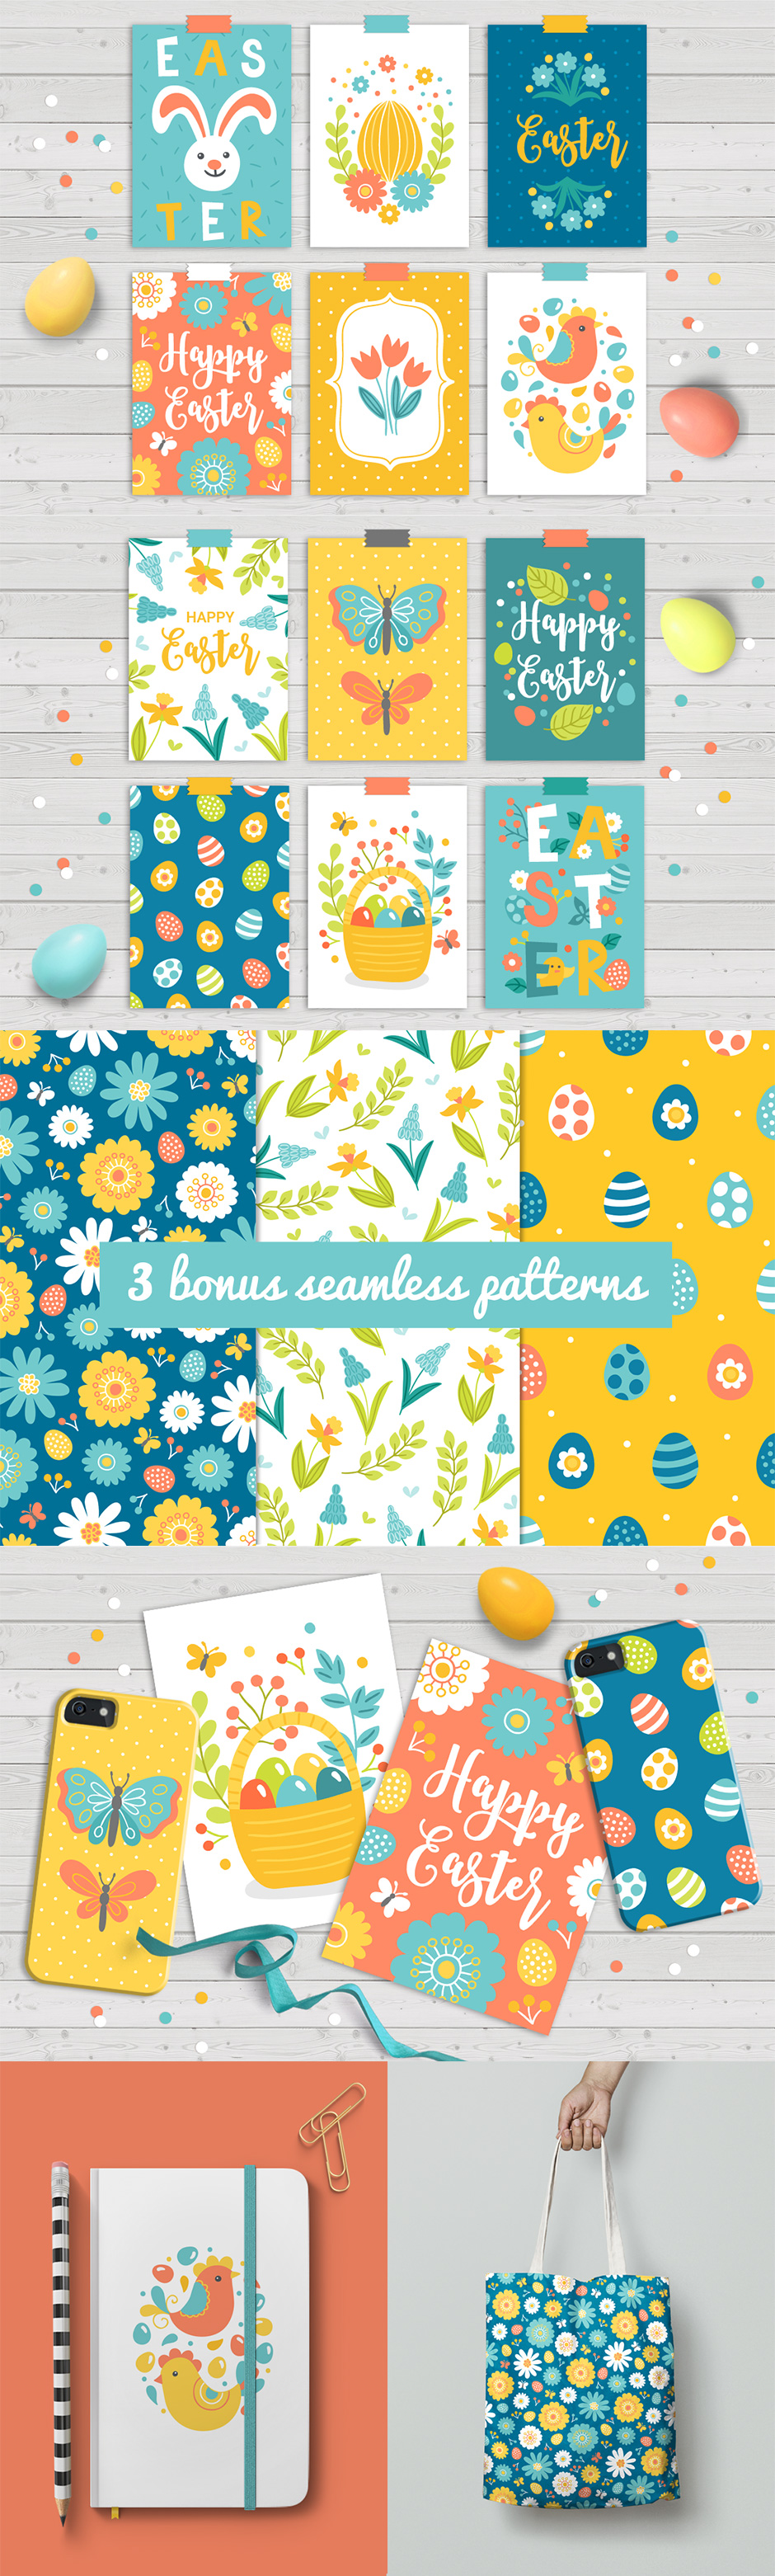 12 Easter Cards & Bonus Patterns